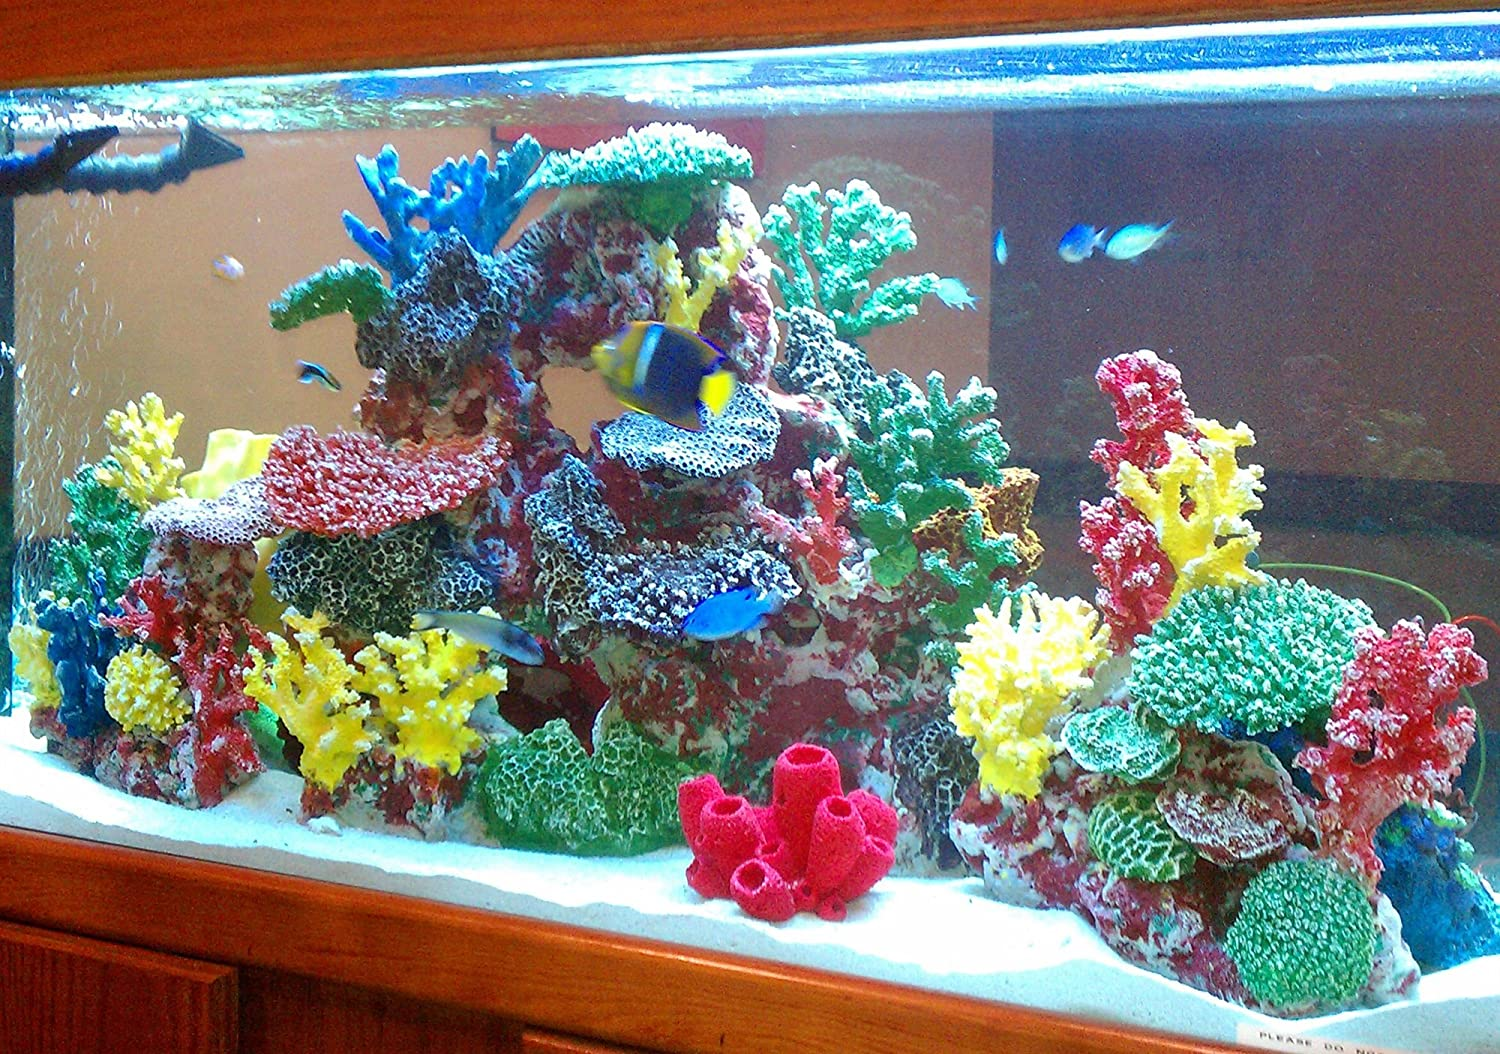 Freshwater fish aquarium accessories - Amazon Com Instant Reef Dm035 Artificial Coral Reef Aquarium Decor For Saltwater Fish Marine Fish Tanks And Freshwater Fish Aquariums Aquarium Decor